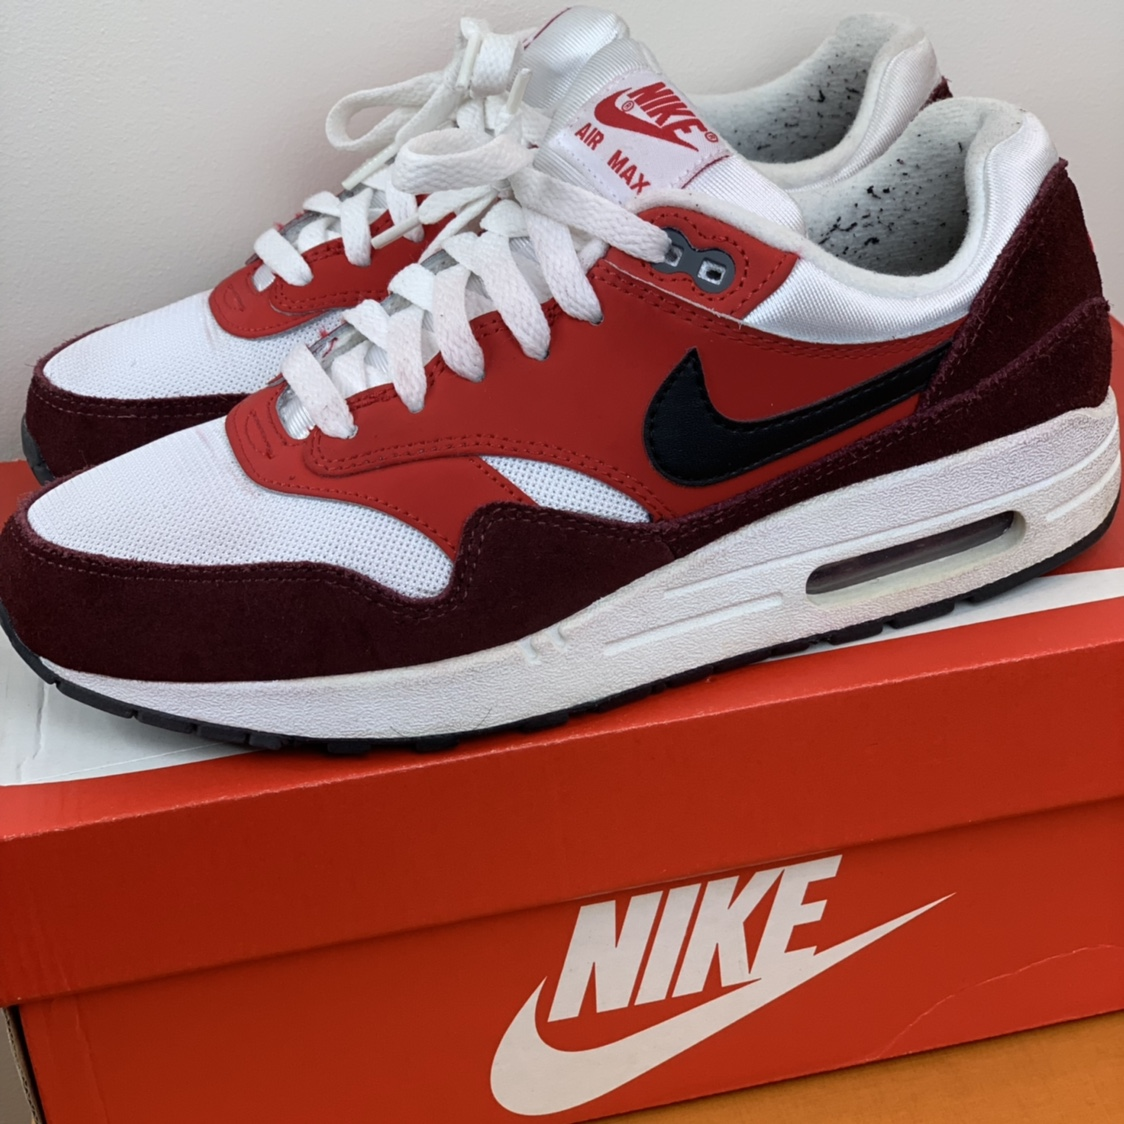 Nike air max 1 red burgundy white Black sneakers Depop